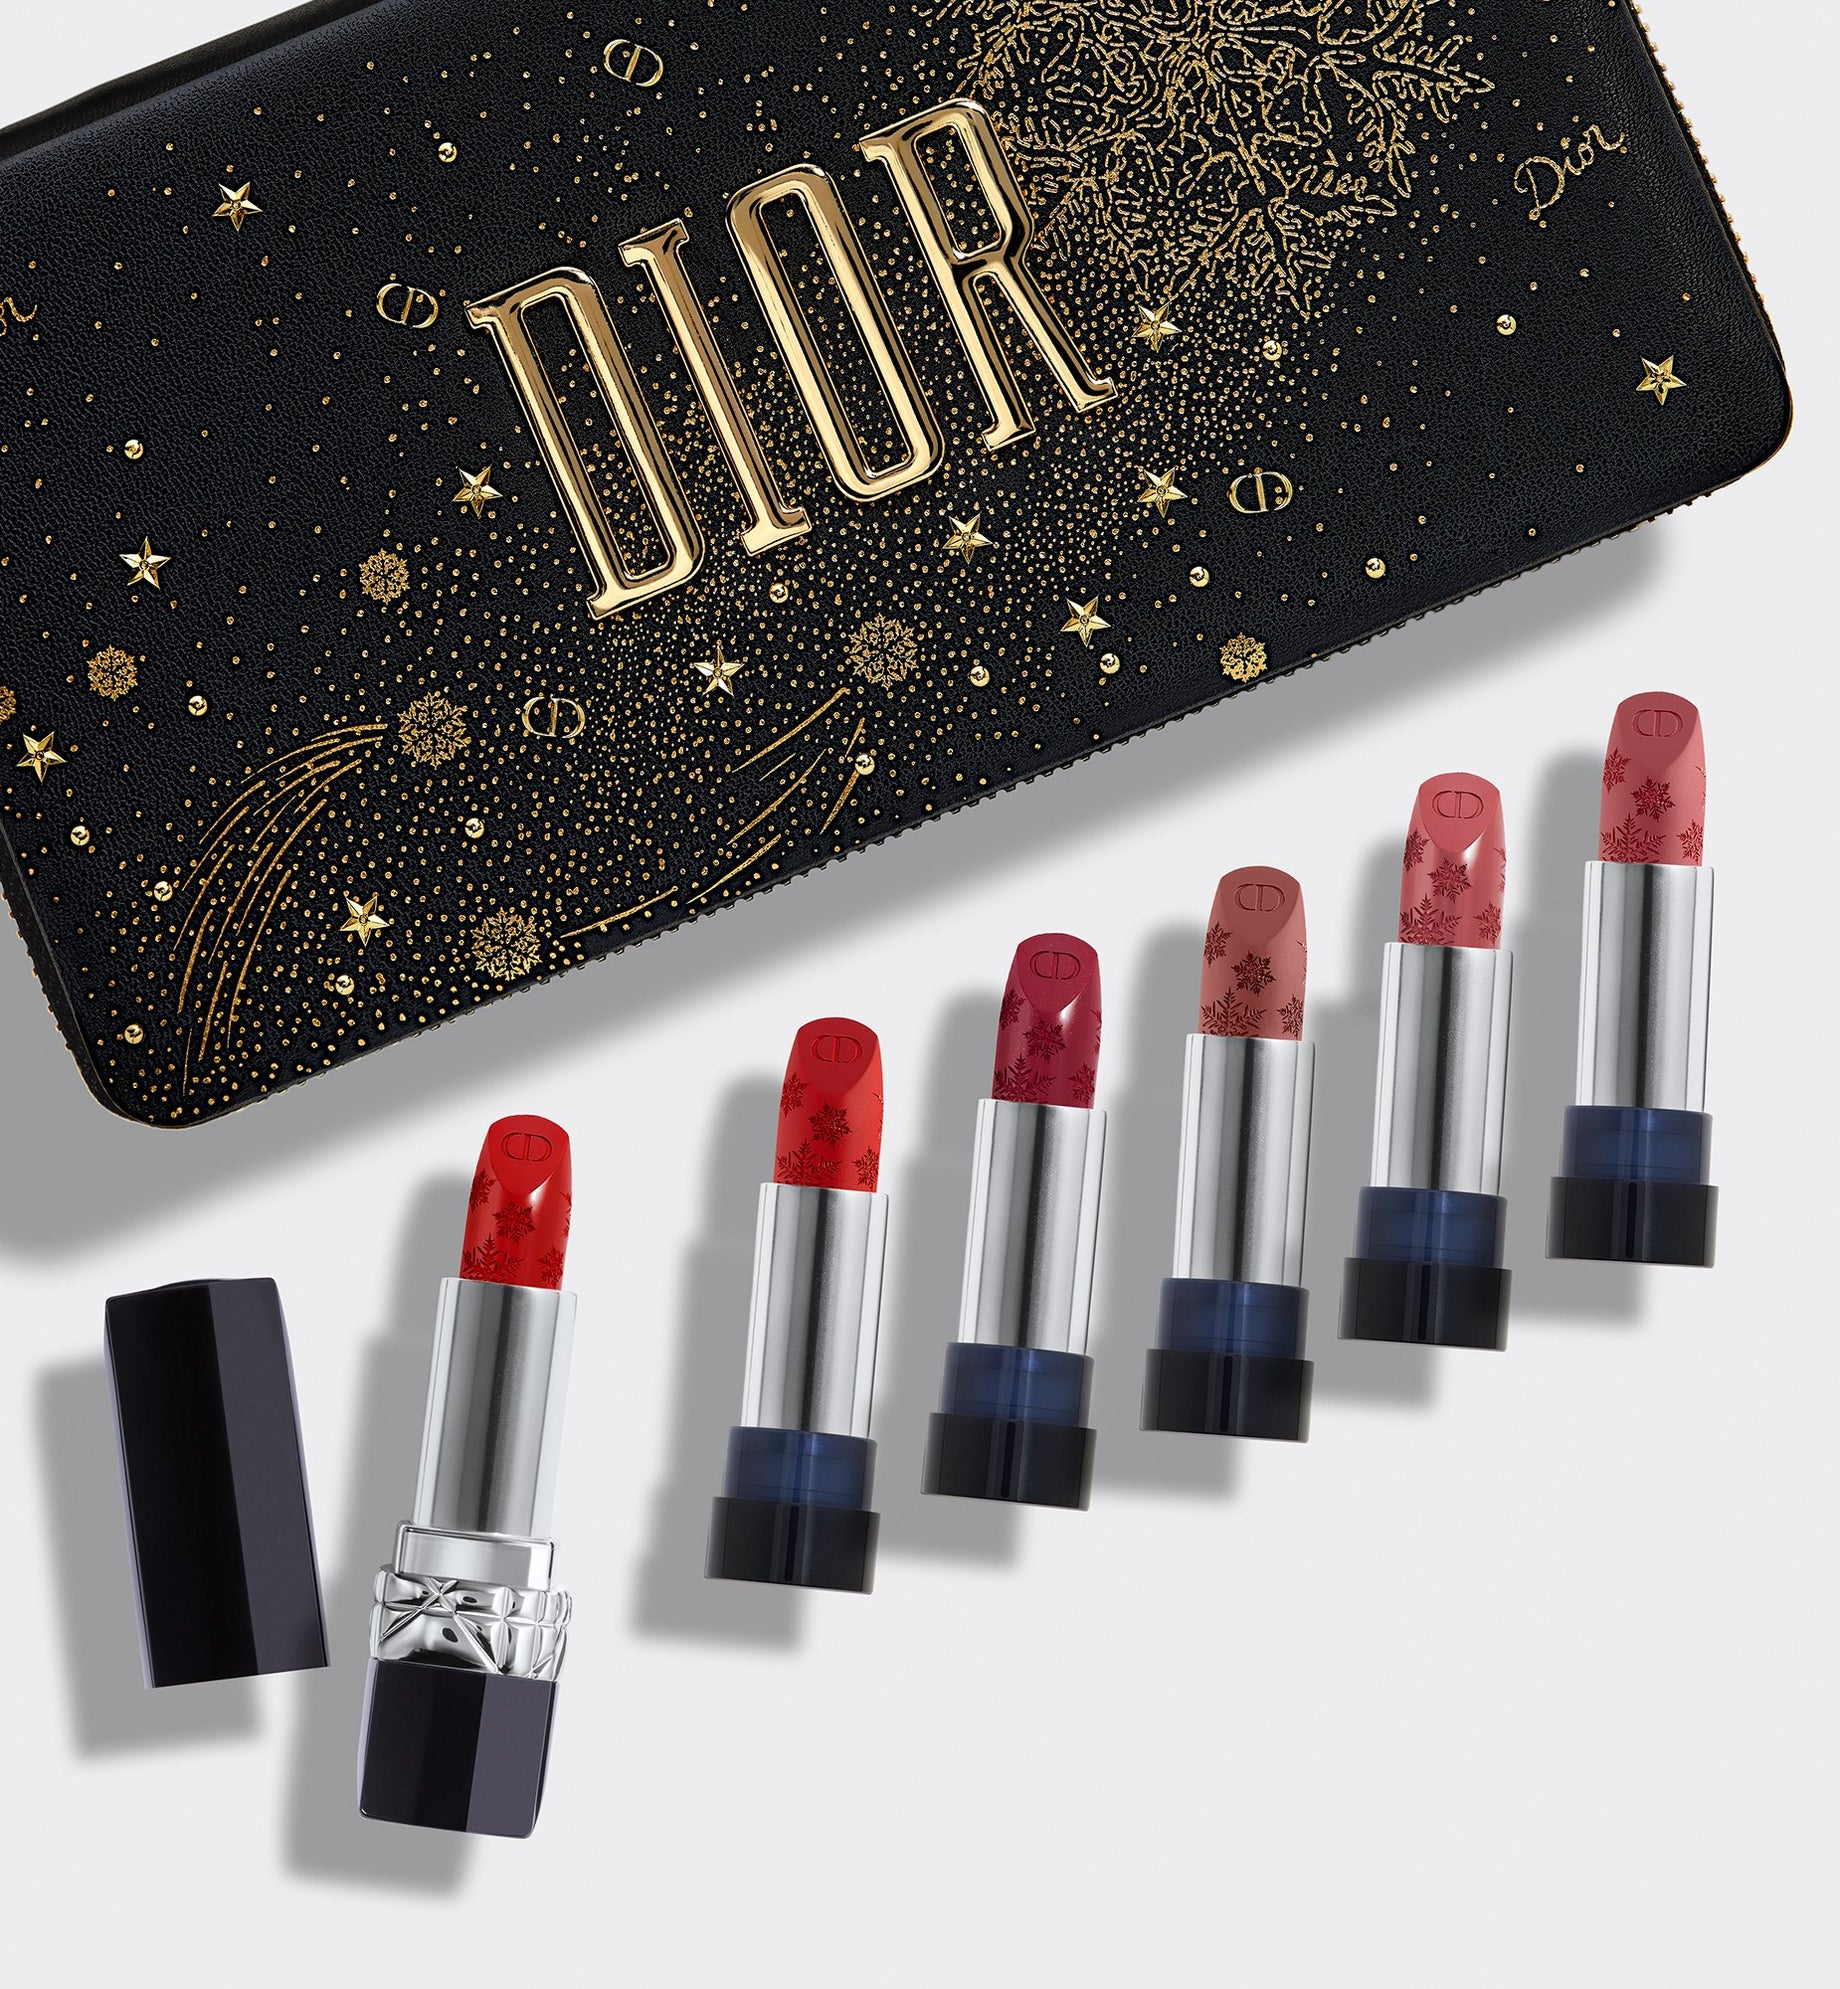 ROUGE DIOR COUTURE COLLECTION REFILLABLE LIPSTICK SET - 6 Shades of Lipstick